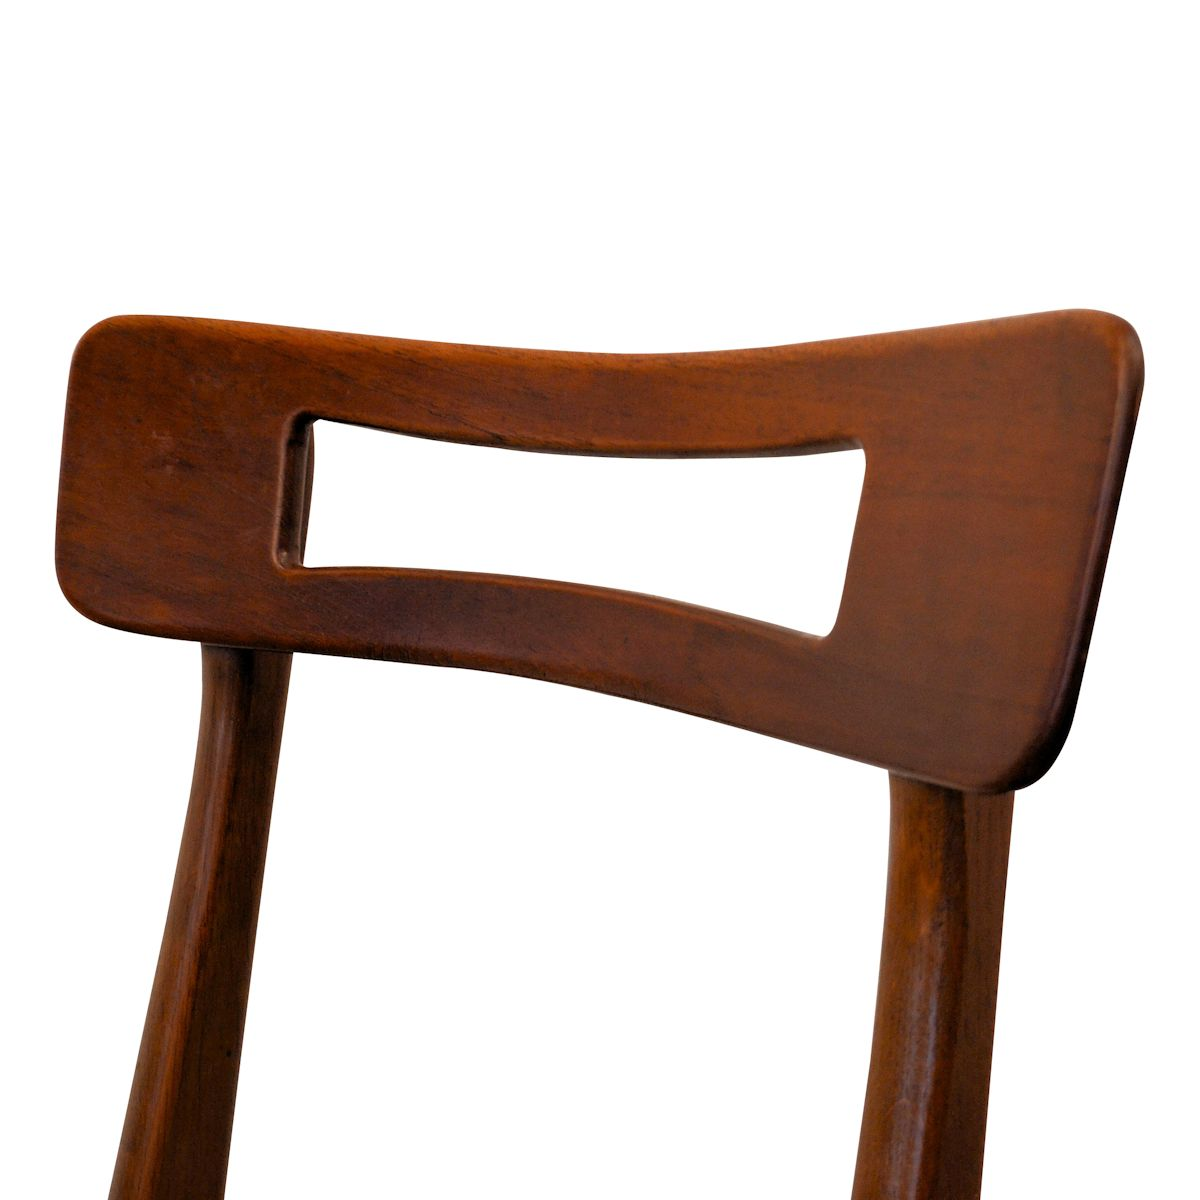 Vintage Teak Danish Modern Dining Chairs - detail backrest